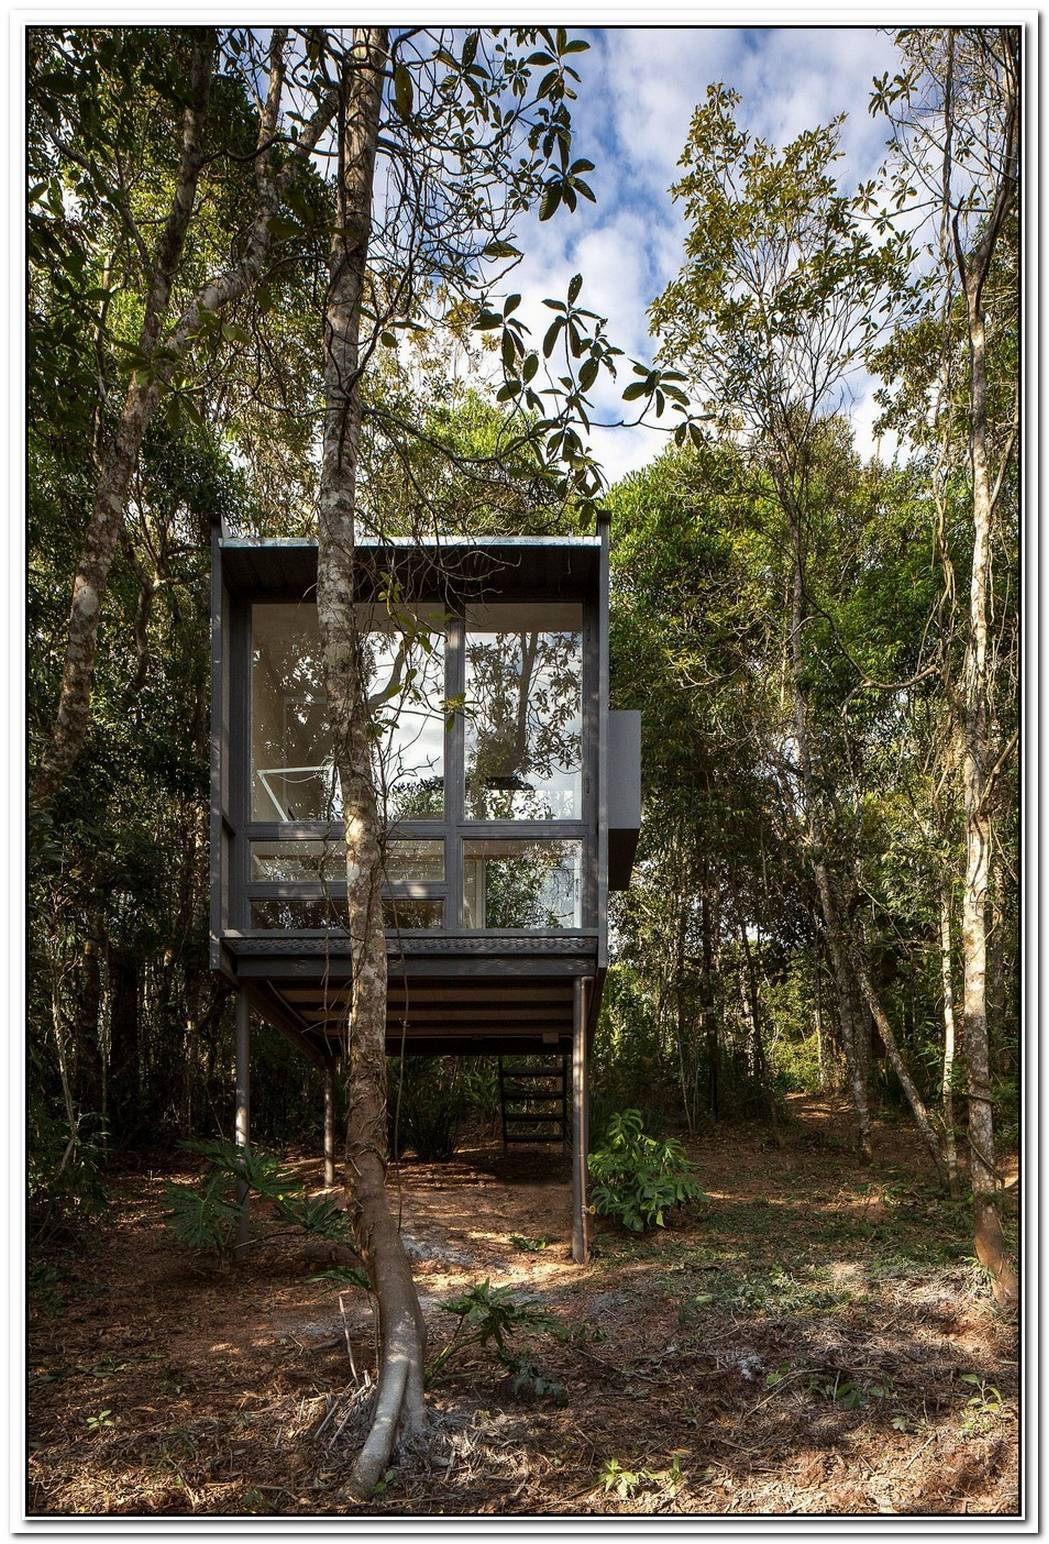 Living With Bare Minimum6 Sqm Cabin In The Forest Provides The Perfect Refuge